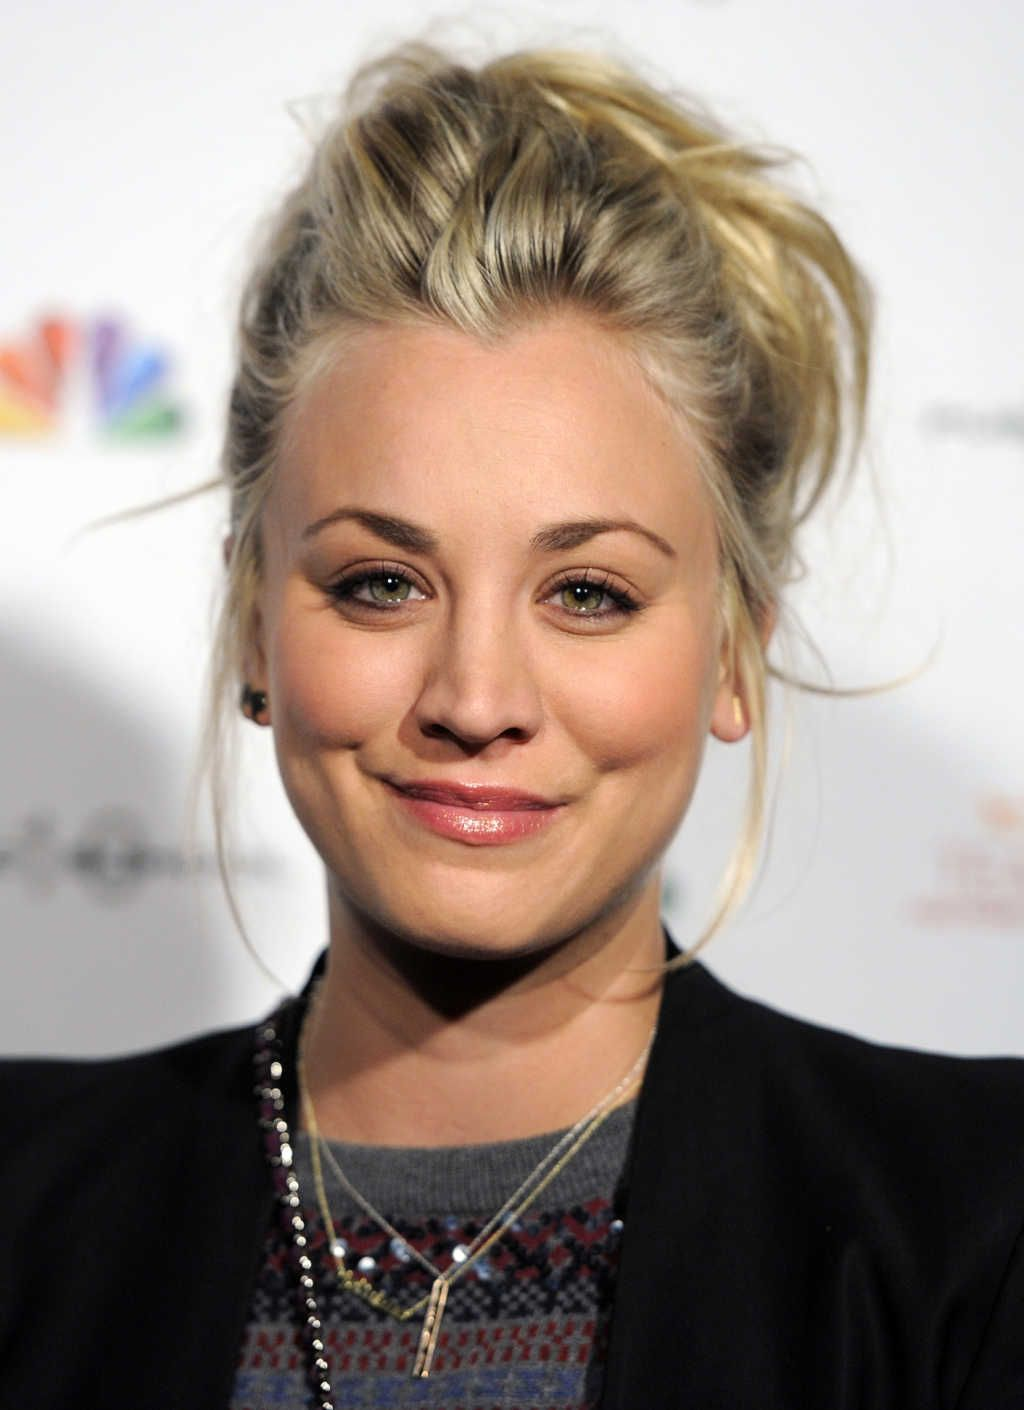 Penny Big Bang Theory Big Bang Theory Kaley Cuoco Kaley Cucco